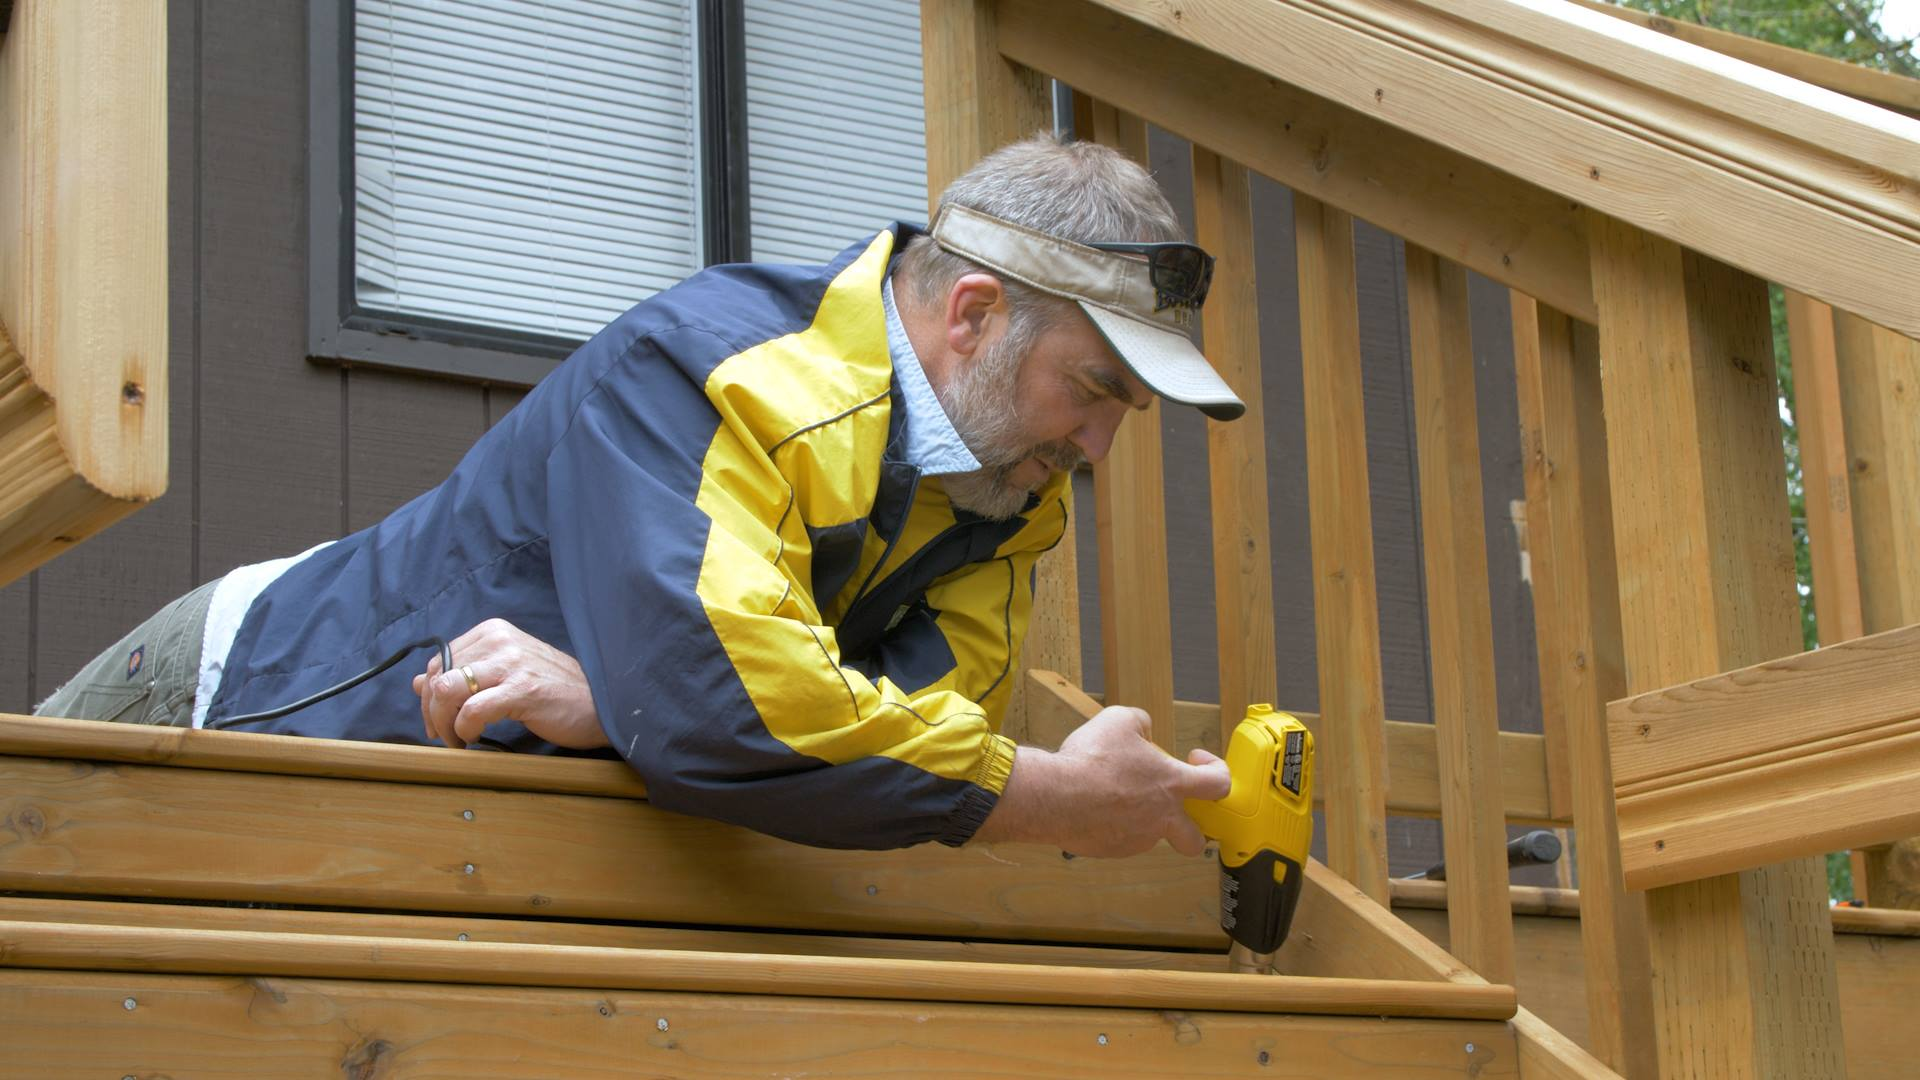 Phil Willenbrock of Harbor Covenant Church in Gig Harbor, Washington, puts his skills to work at Easterseals Camp Stand By Me.